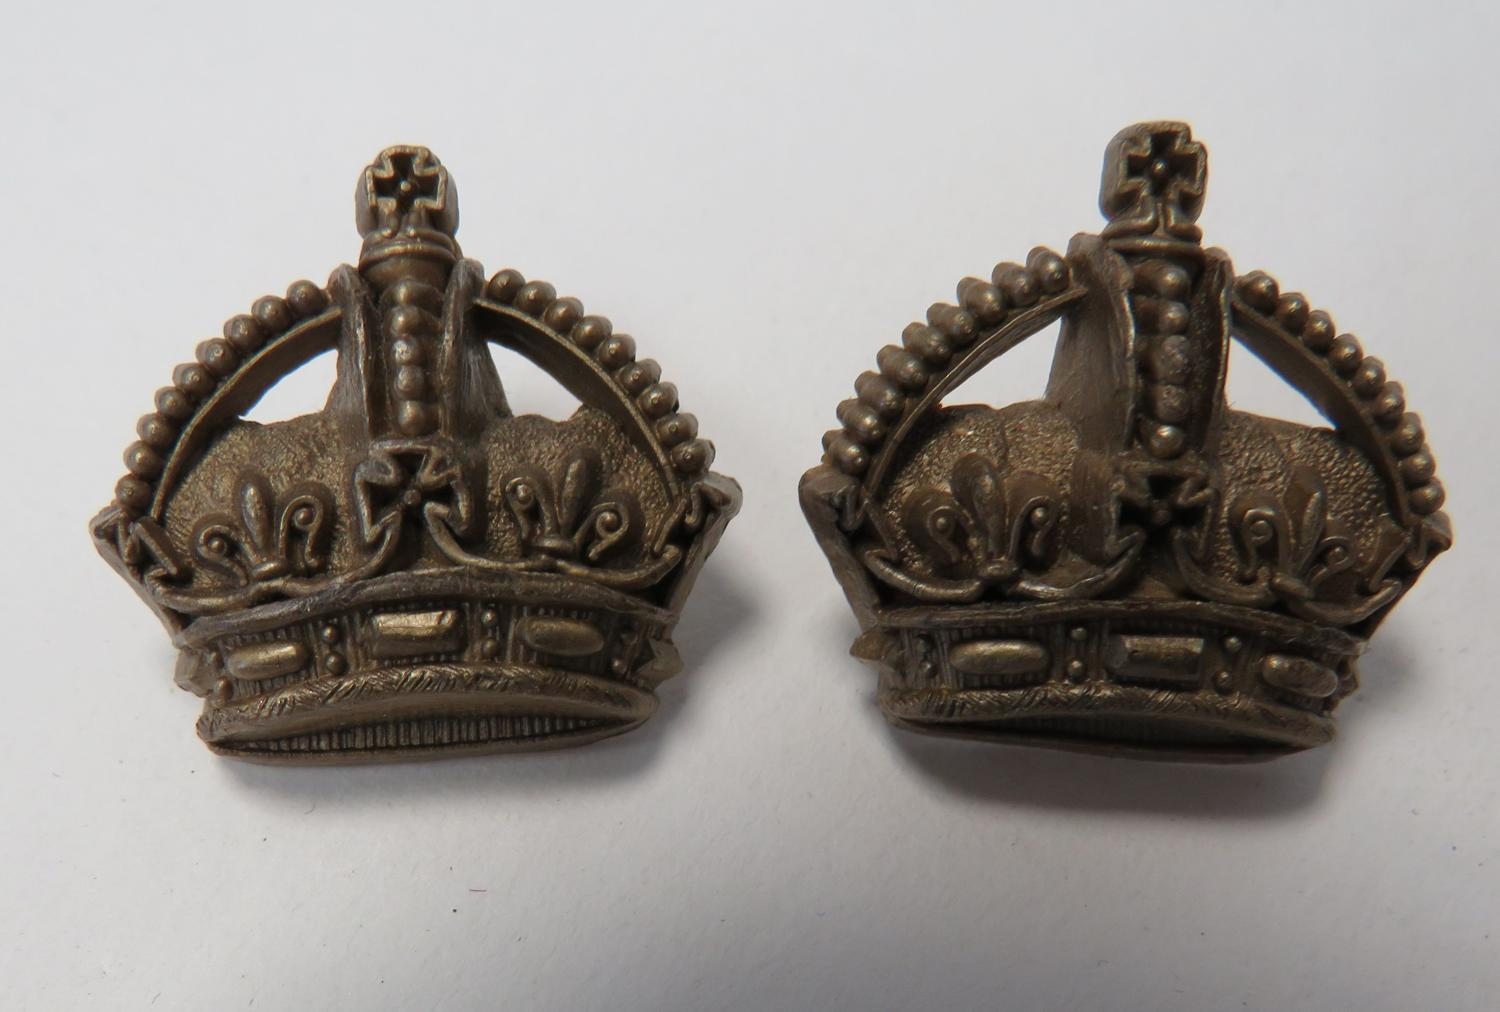 Pair of Majors Plastic Utility Rank Crowns